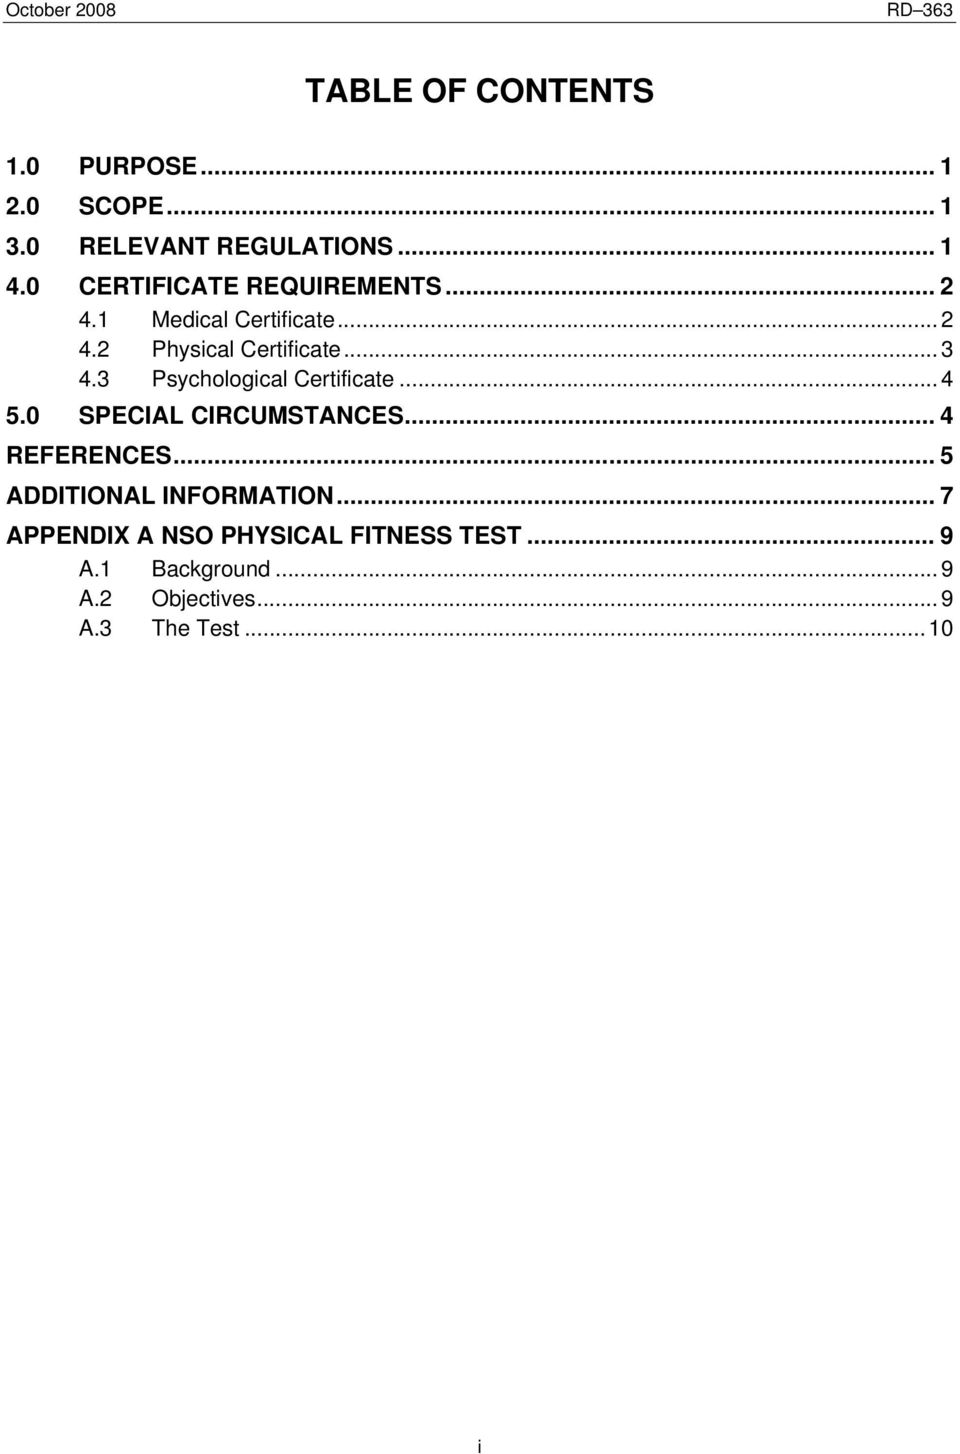 3 Psychological Certificate... 4 5.0 SPECIAL CIRCUMSTANCES... 4 REFERENCES.